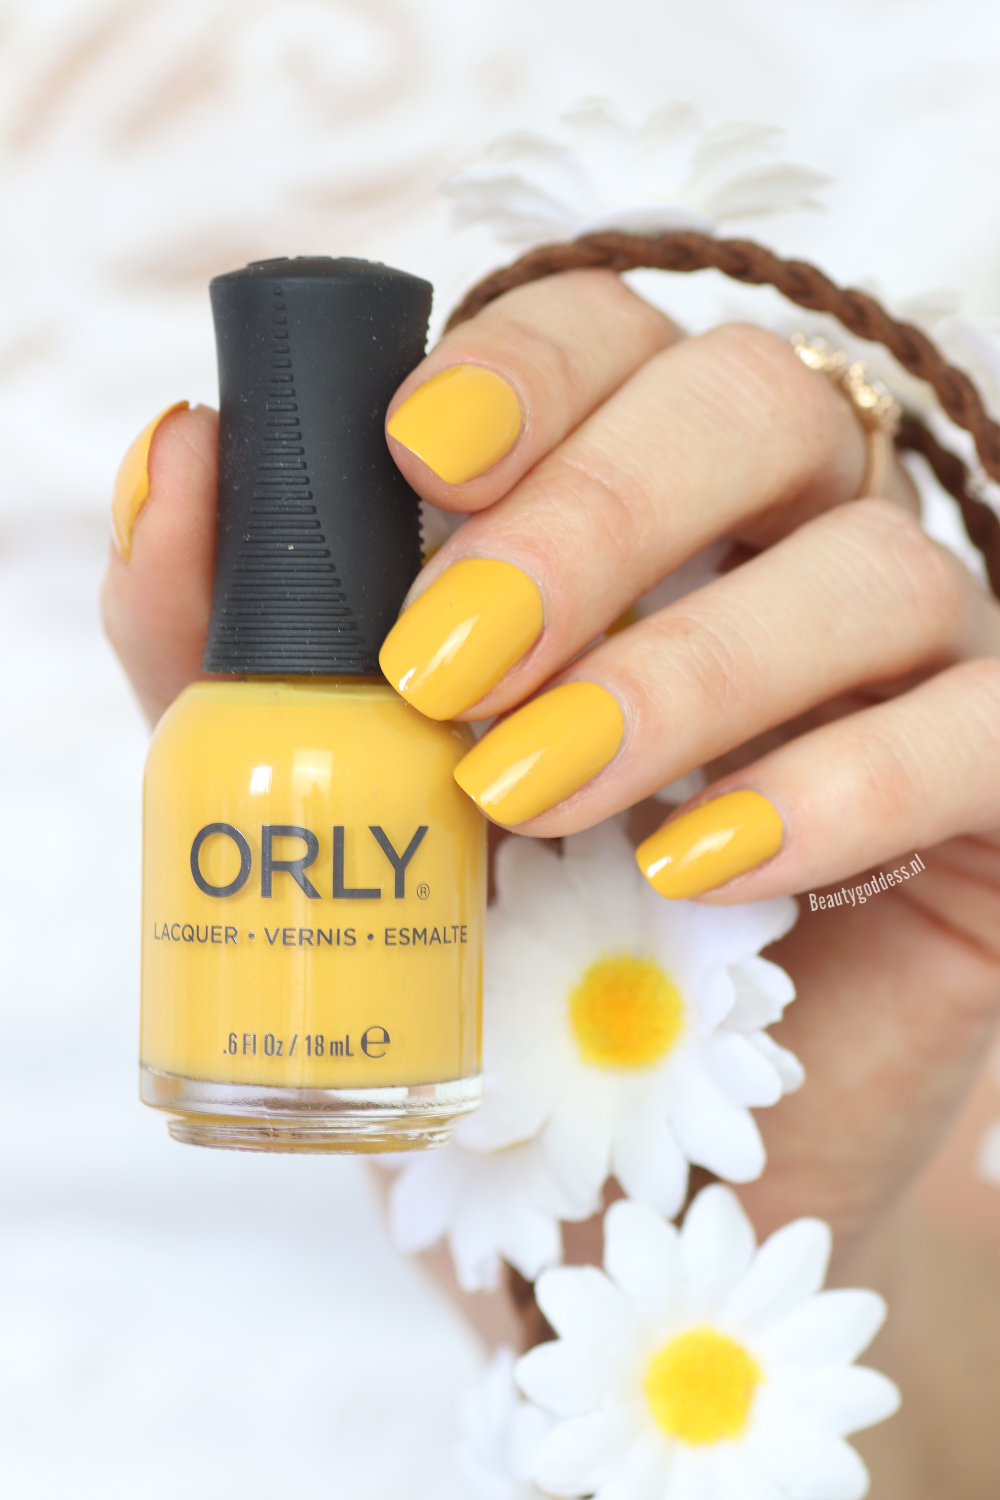 ORLY Here comes the sun